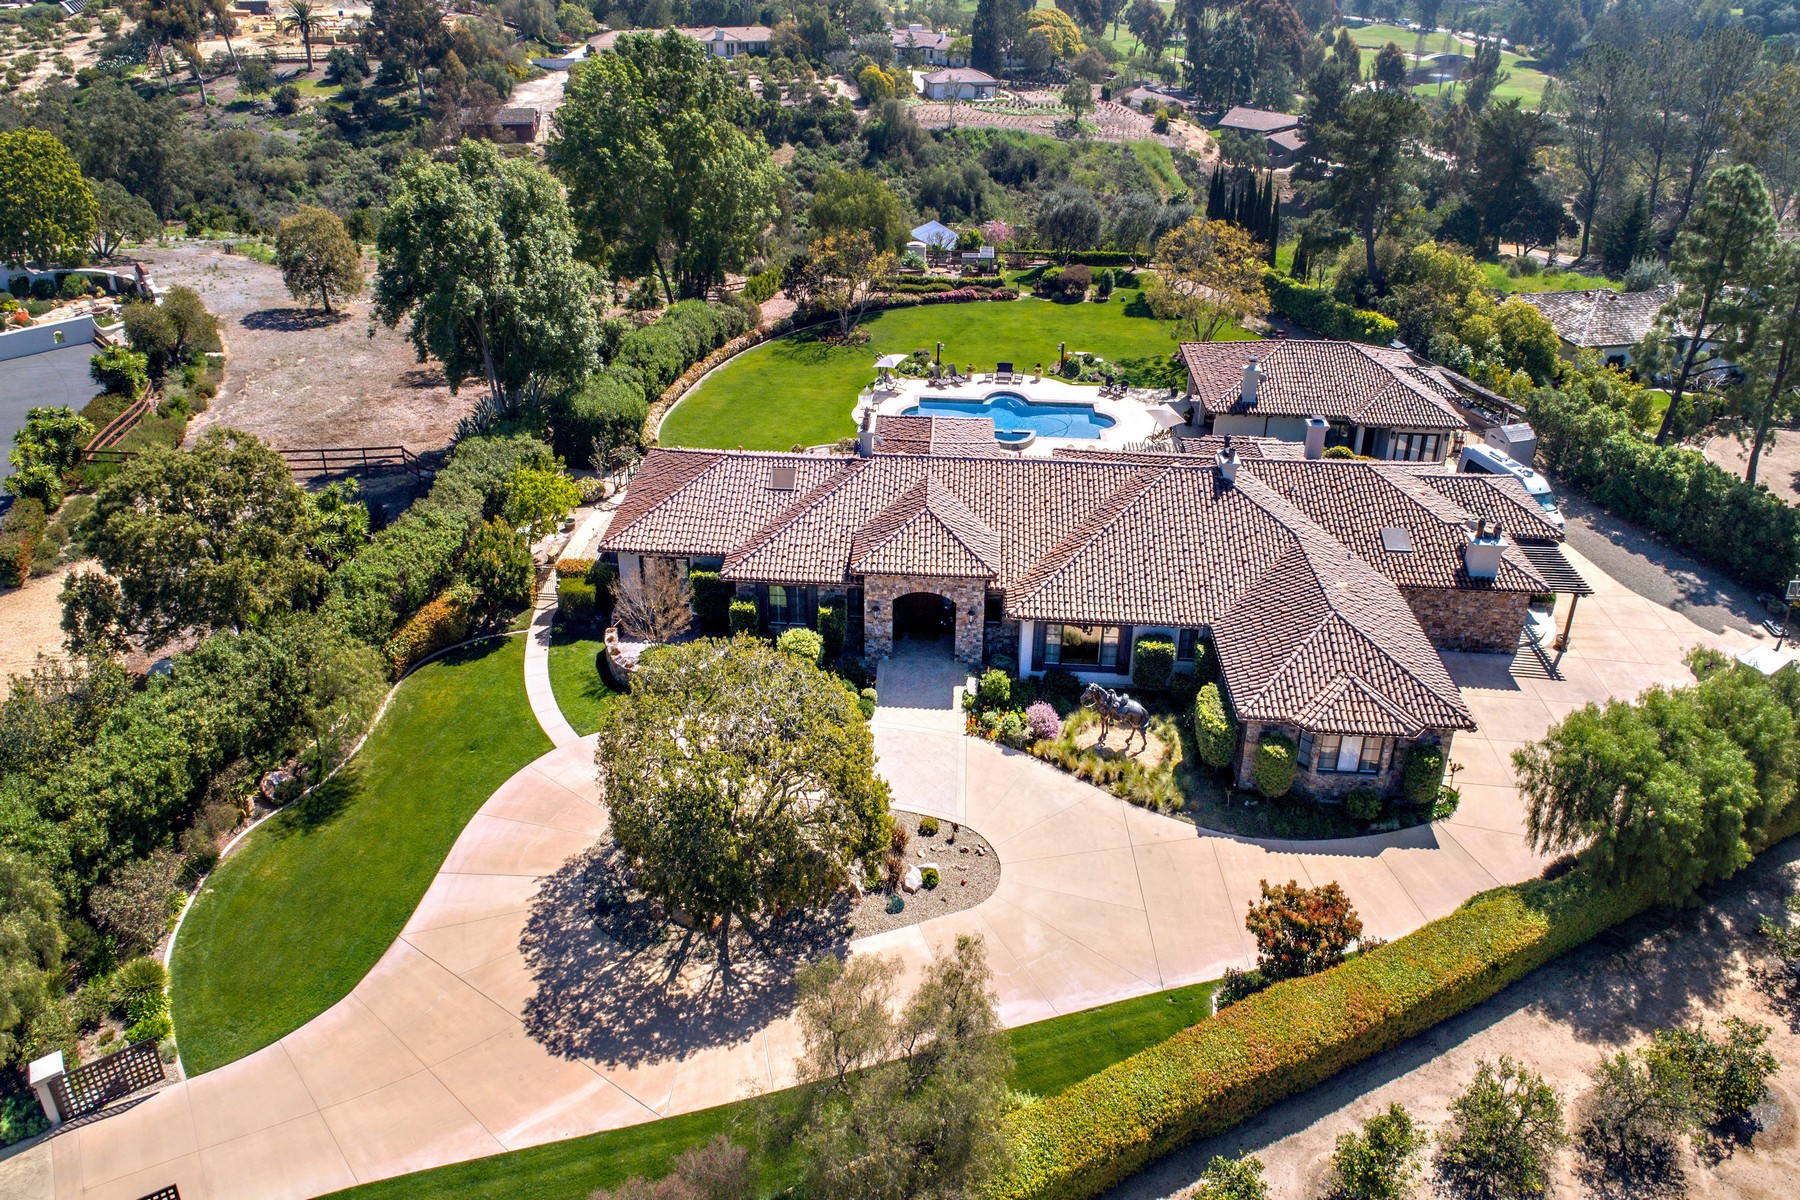 Single Family Home for Sale at 4843 La Jacaranda Rancho Santa Fe, California, 92067 United States